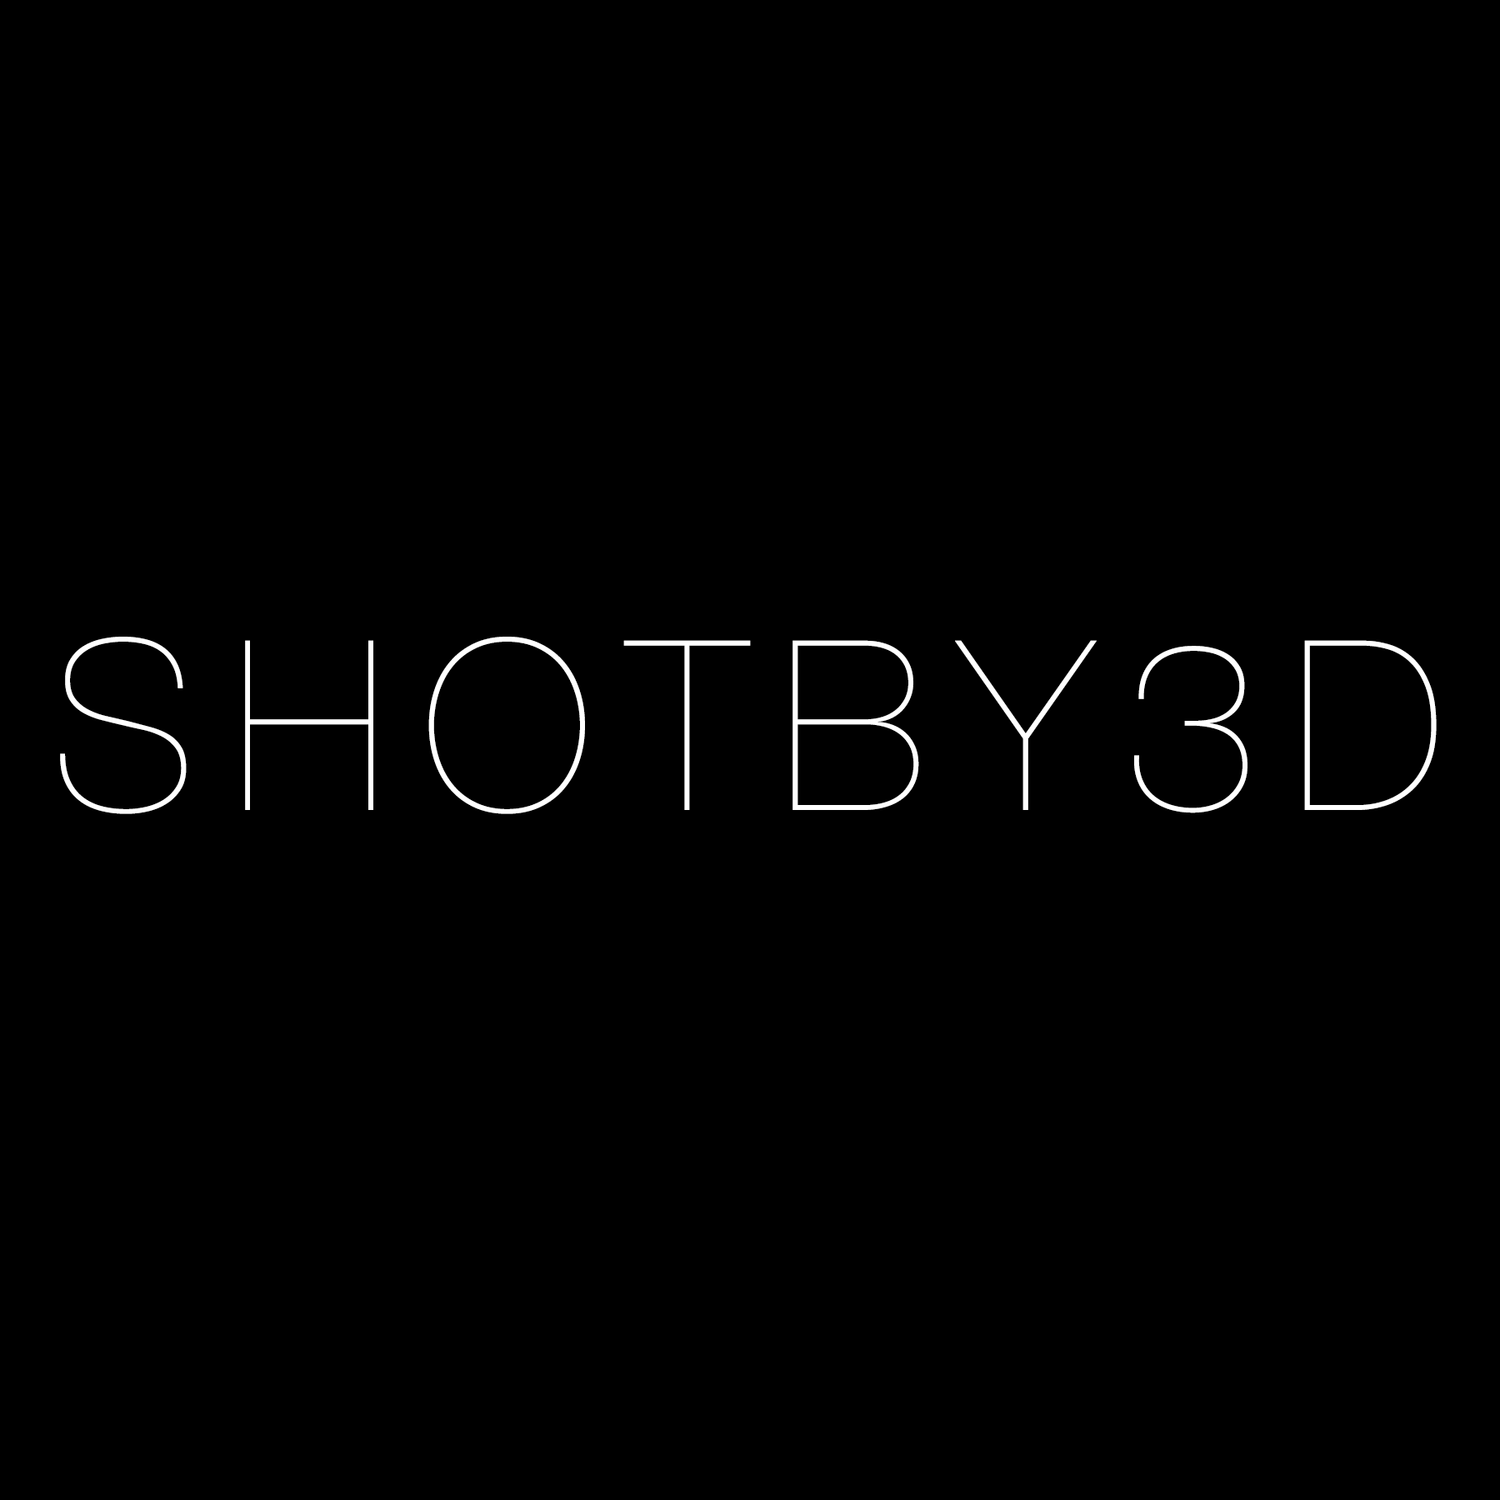 Shotby3d Photography